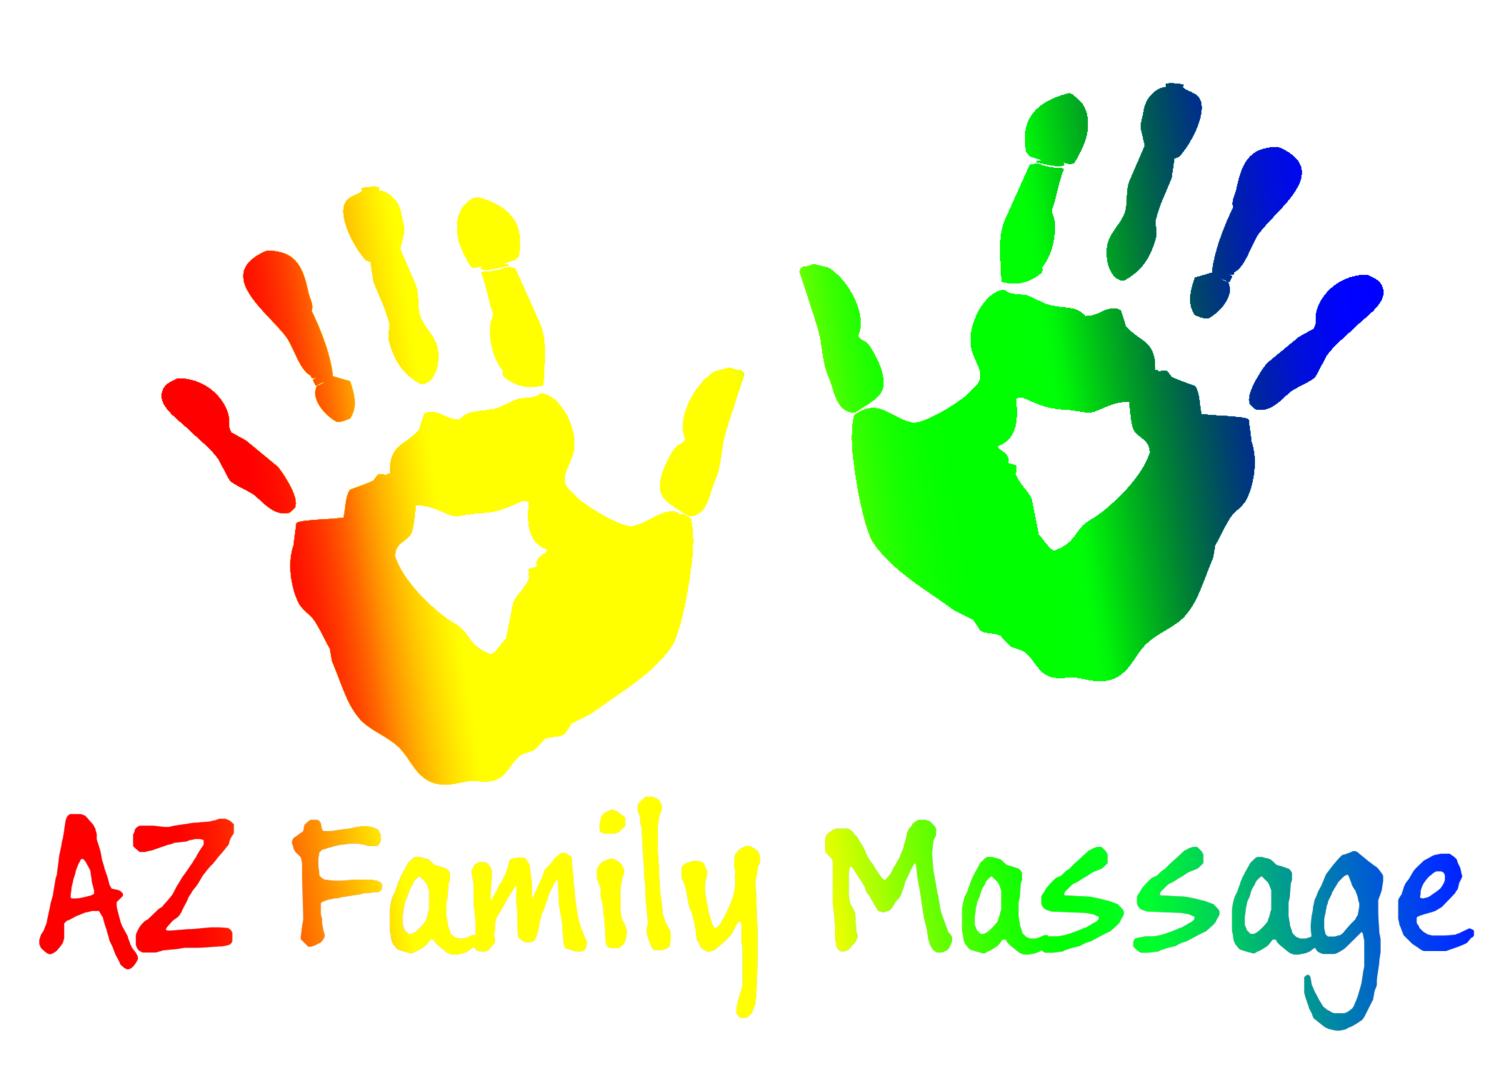 AZ Family Massage